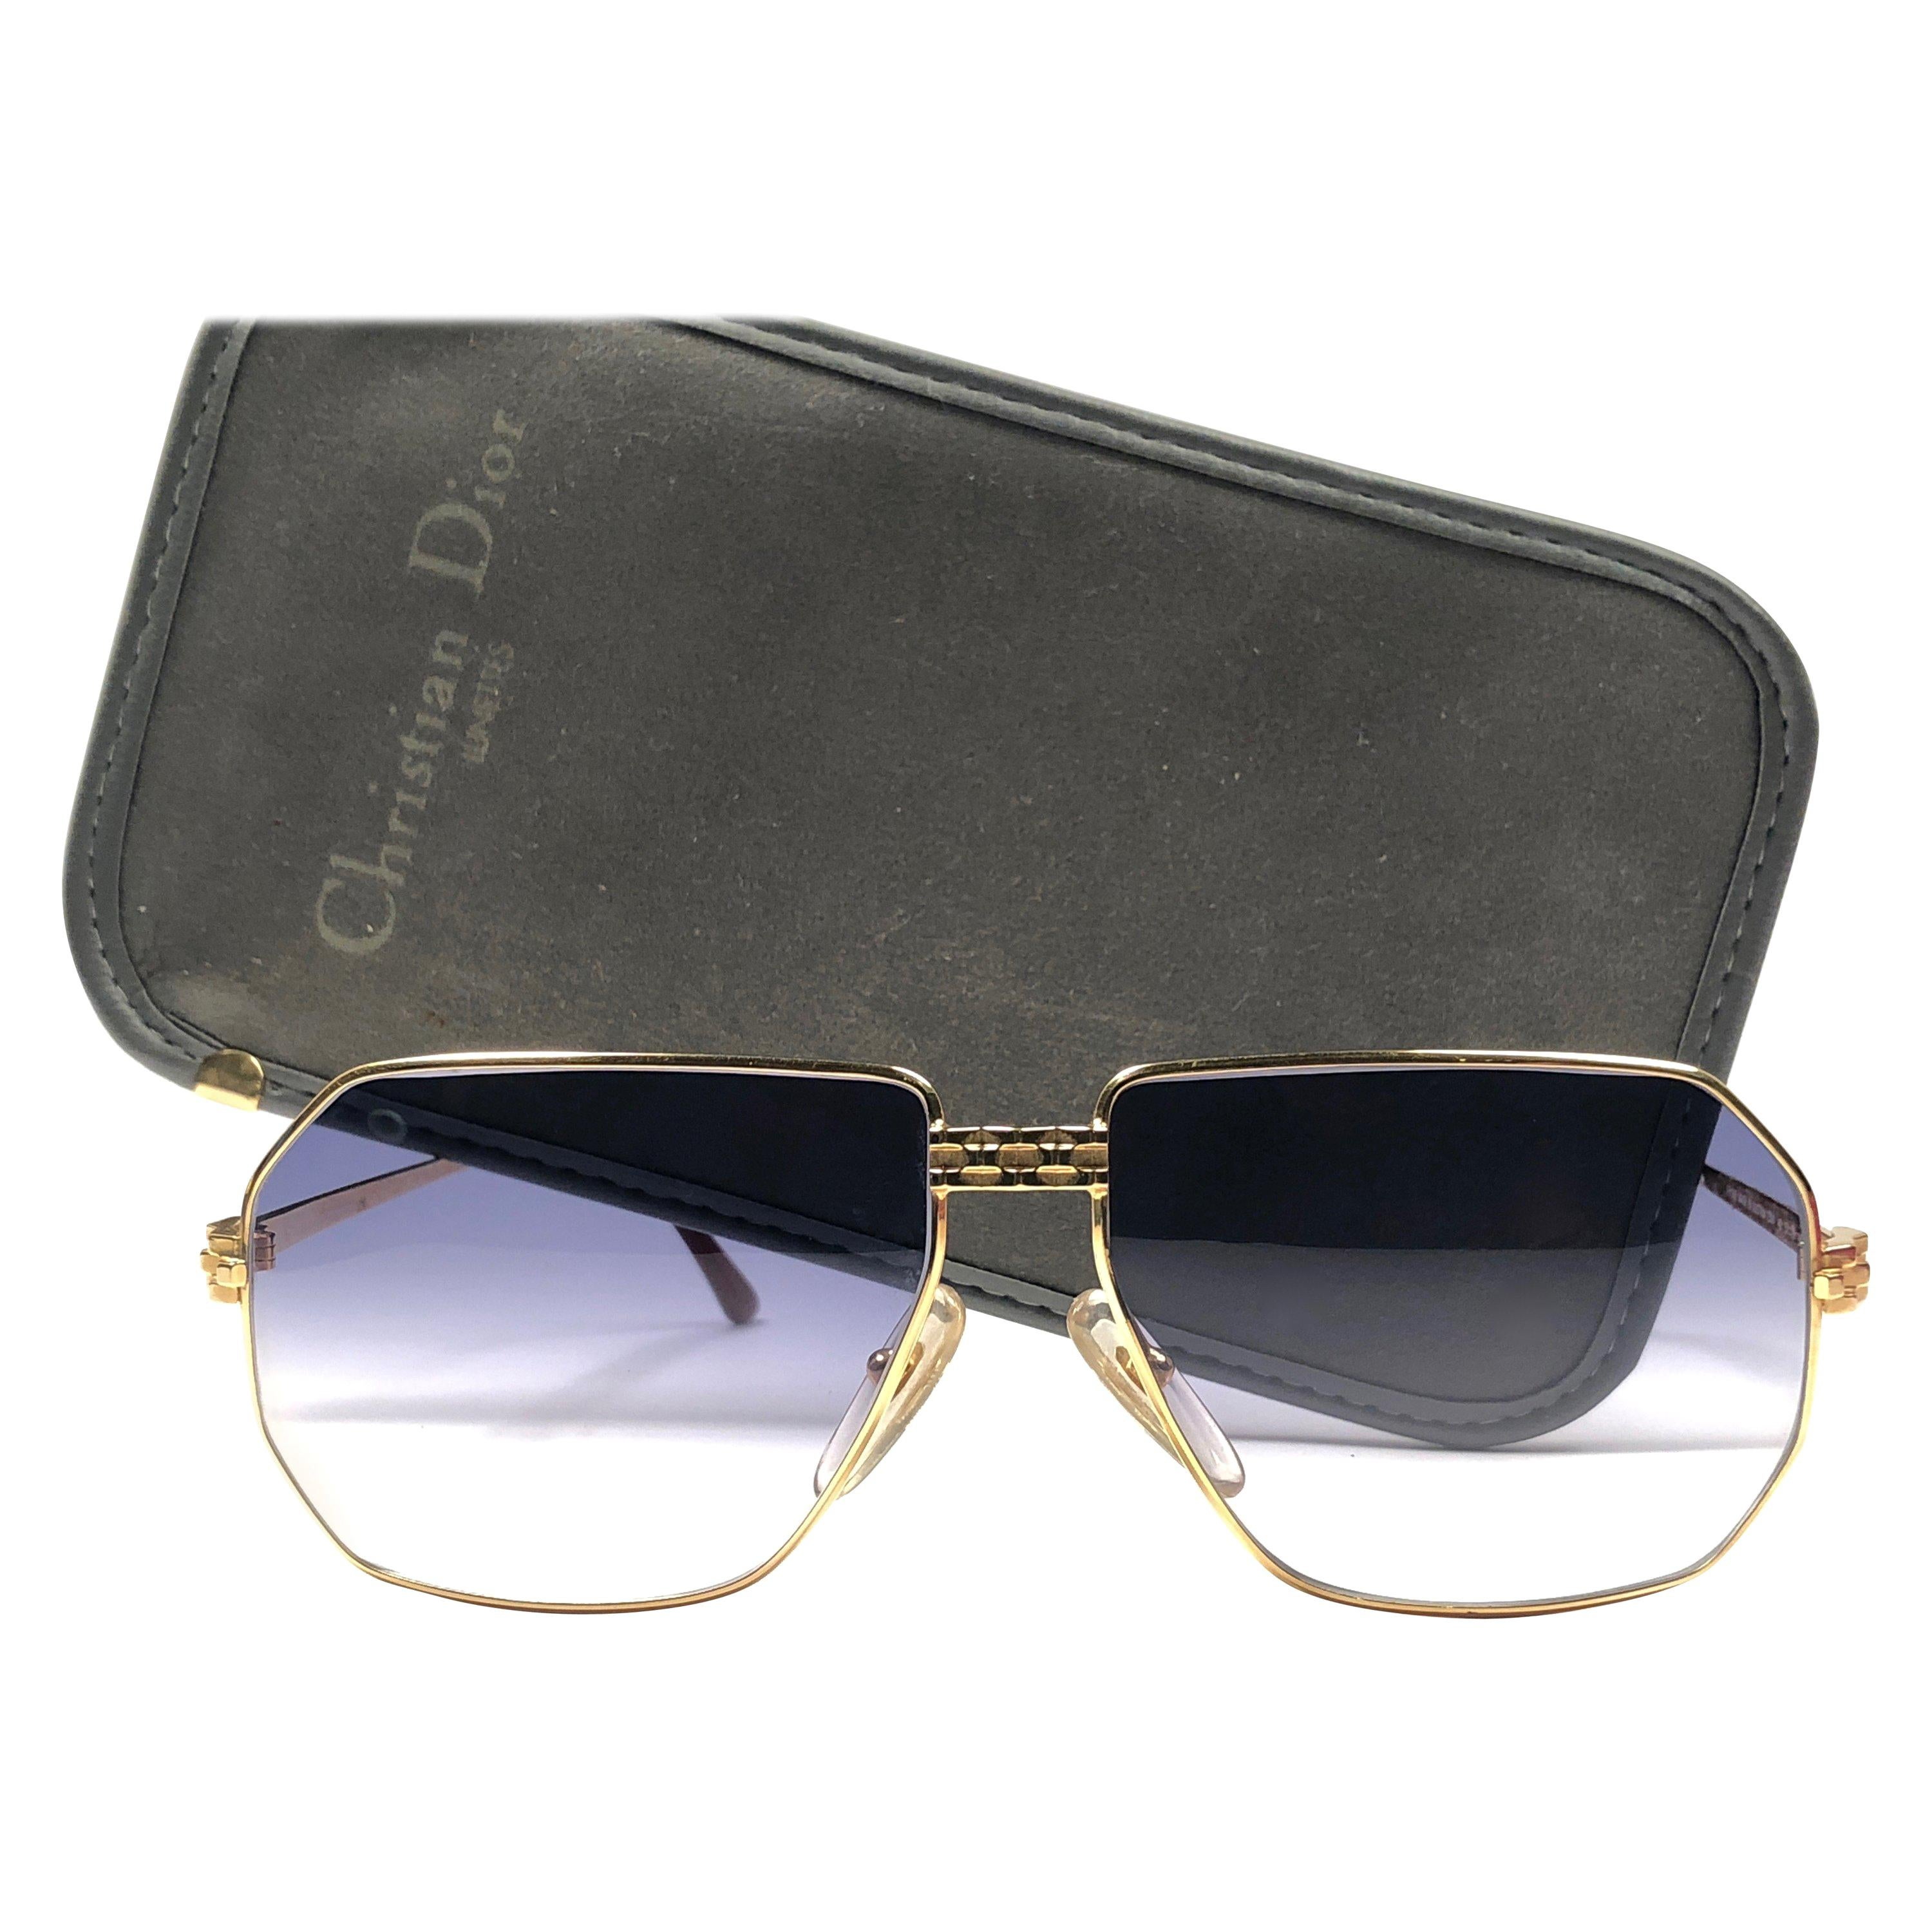 08f6c18233 Vintage Christian Dior Sunglasses - 228 For Sale at 1stdibs